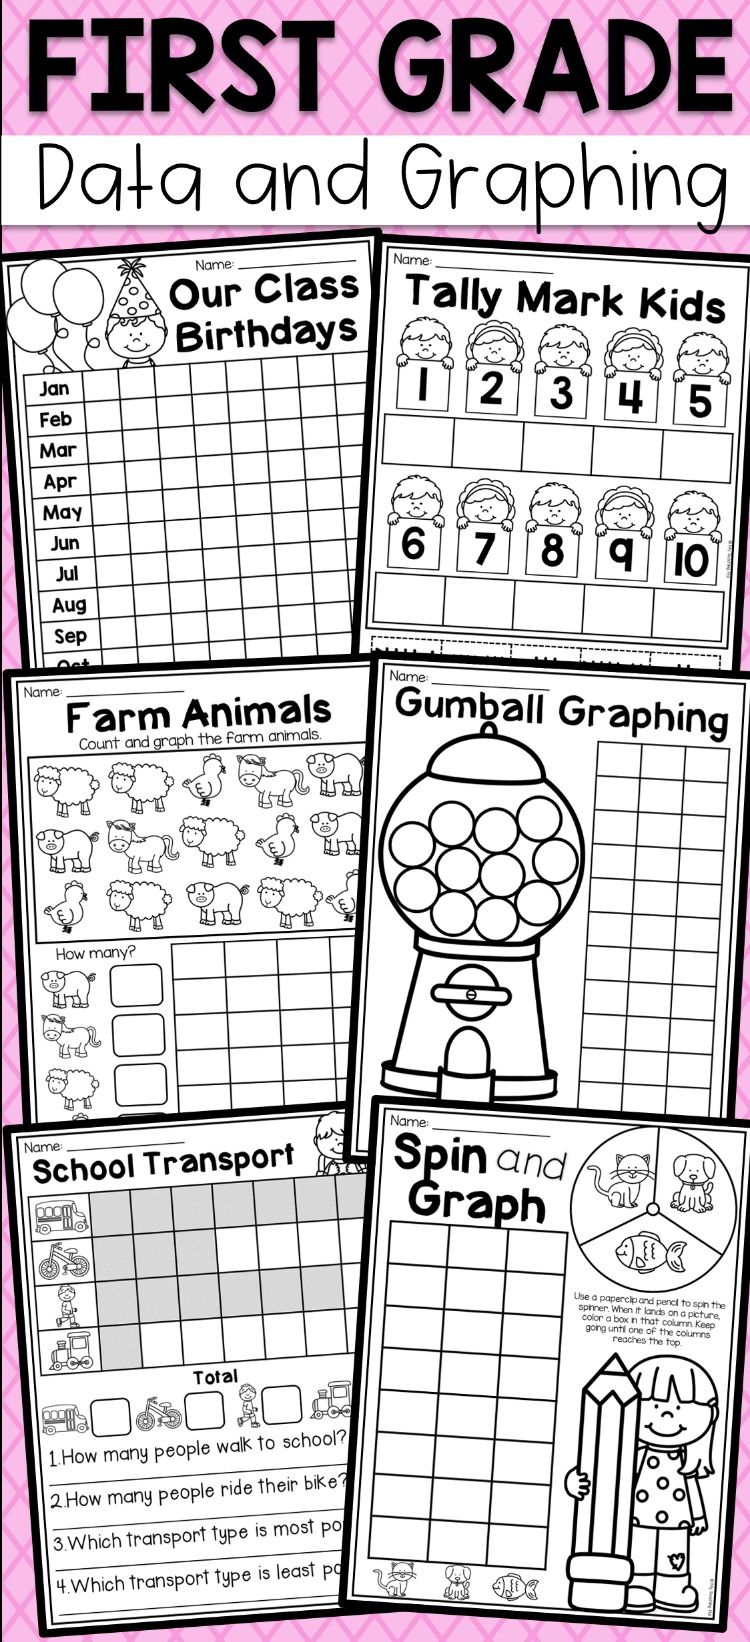 First Grade Data And Graphing Worksheets Distance Learning Graphing First Grade Graphing Worksheets First Grade Worksheets [ 1642 x 750 Pixel ]